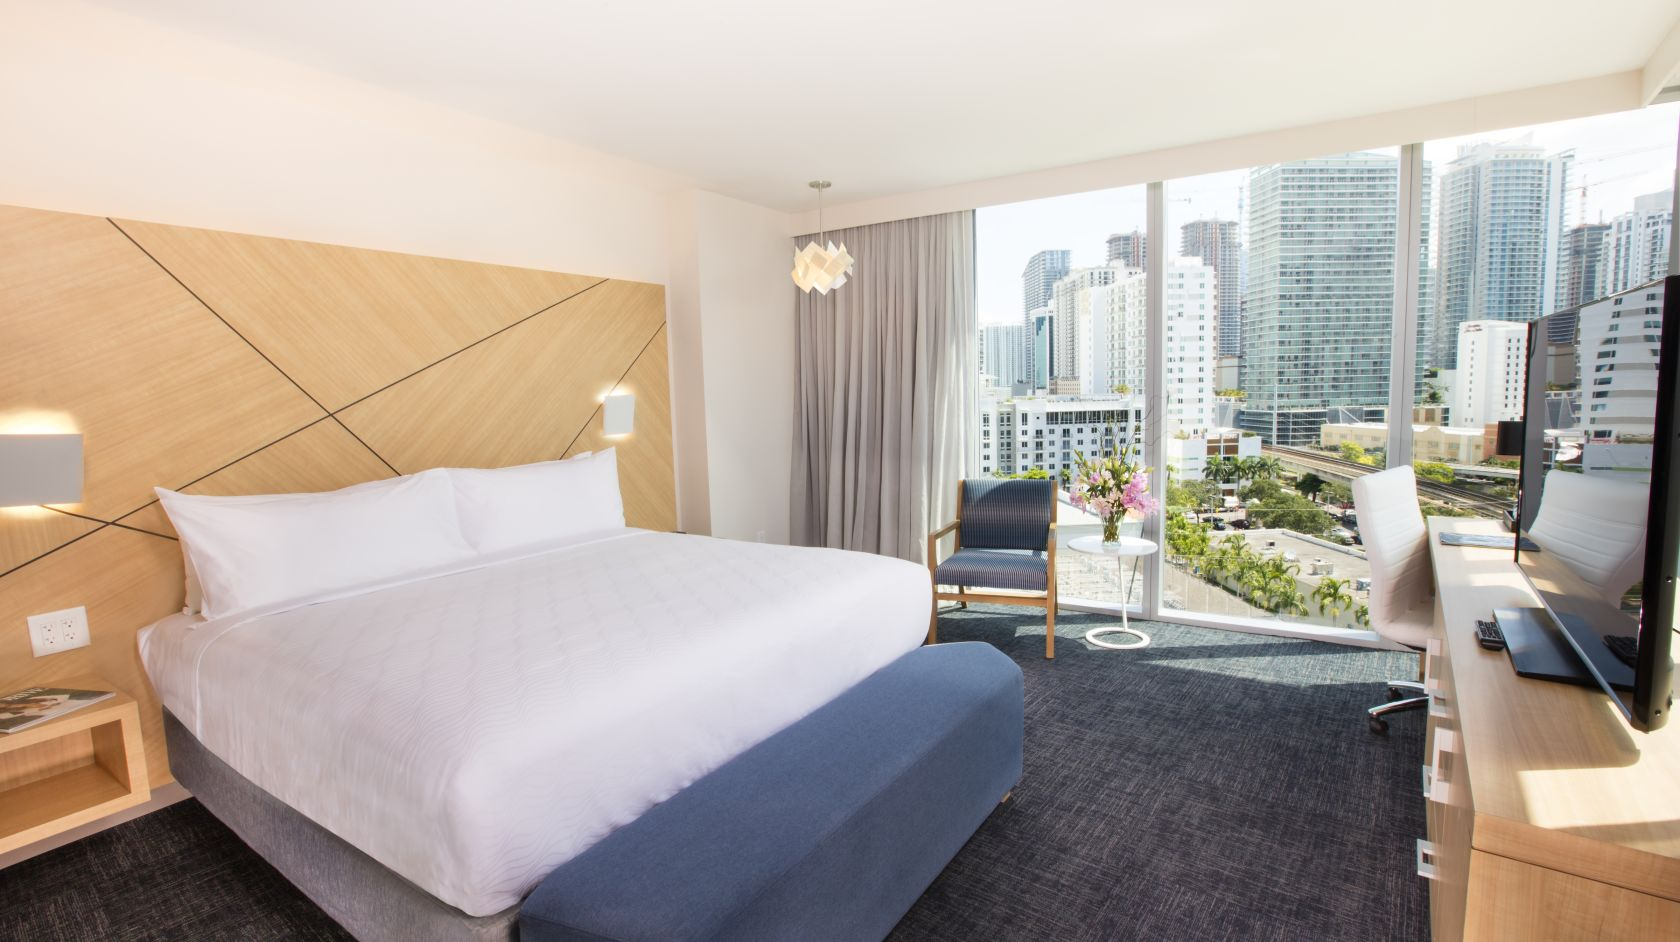 Novotel Miami Brickell executive suite with downtown views of the city